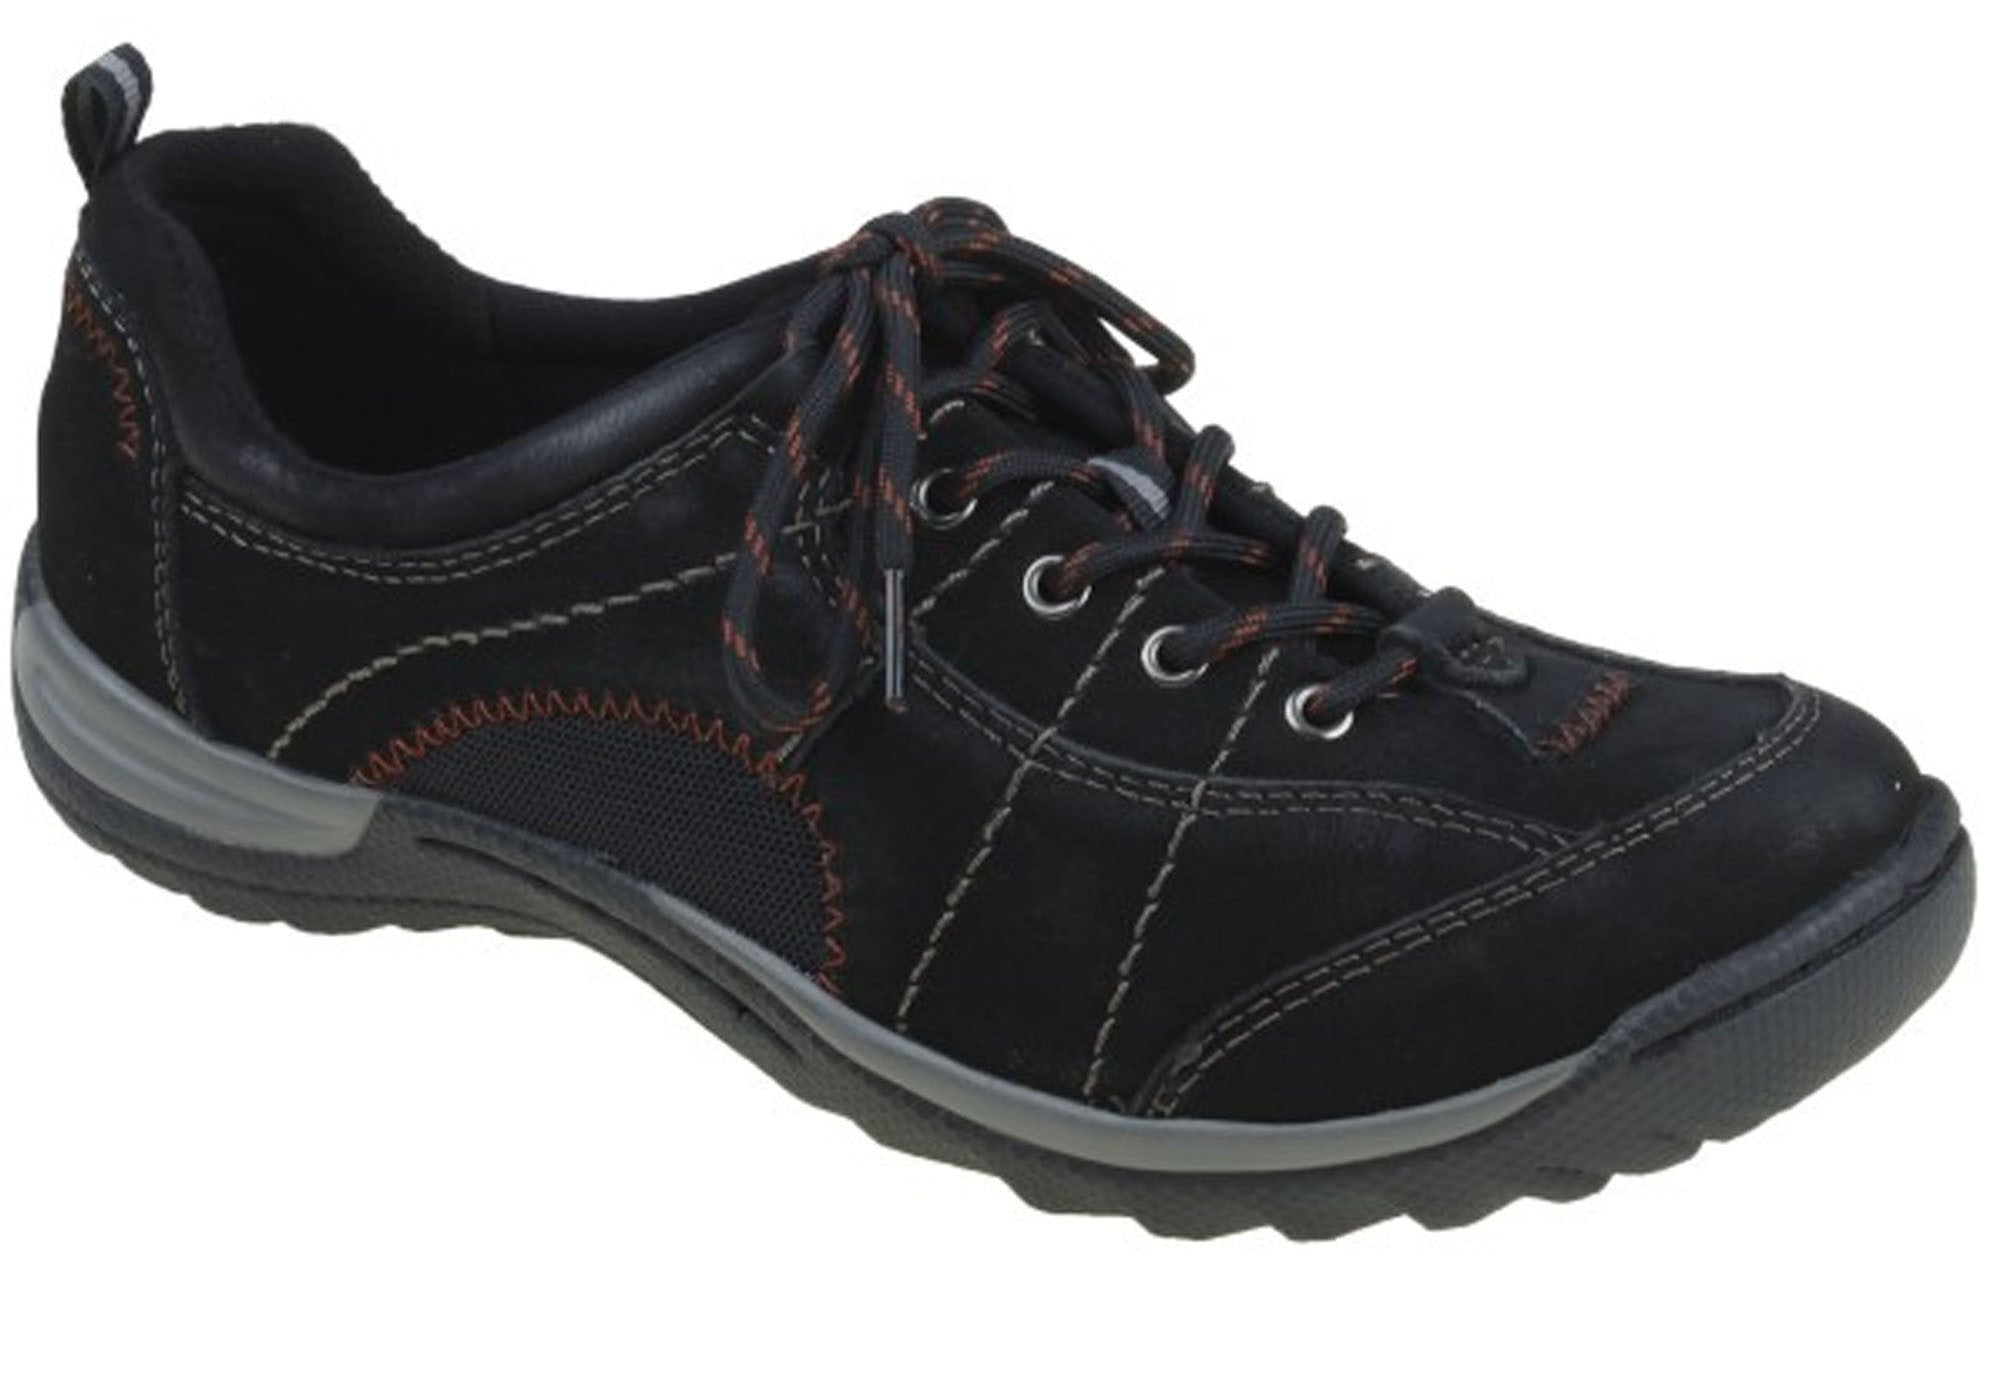 Planet Shoes Nadine 2 Womens Comfortable Walking Shoes Cushioned/Arch Support | eBay